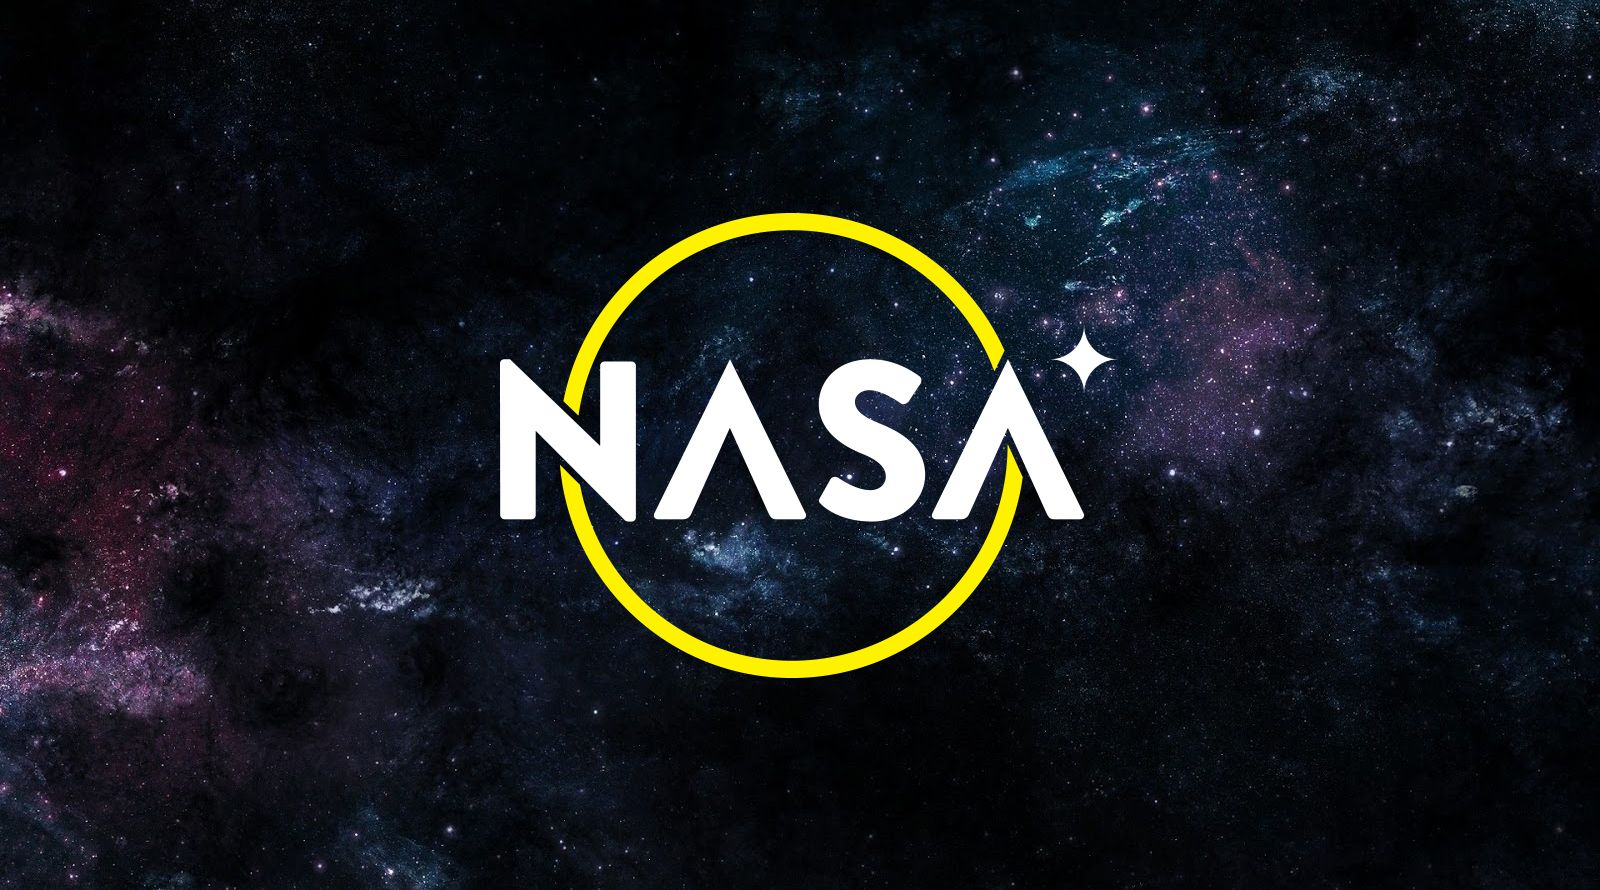 Nasa logo concept on space background